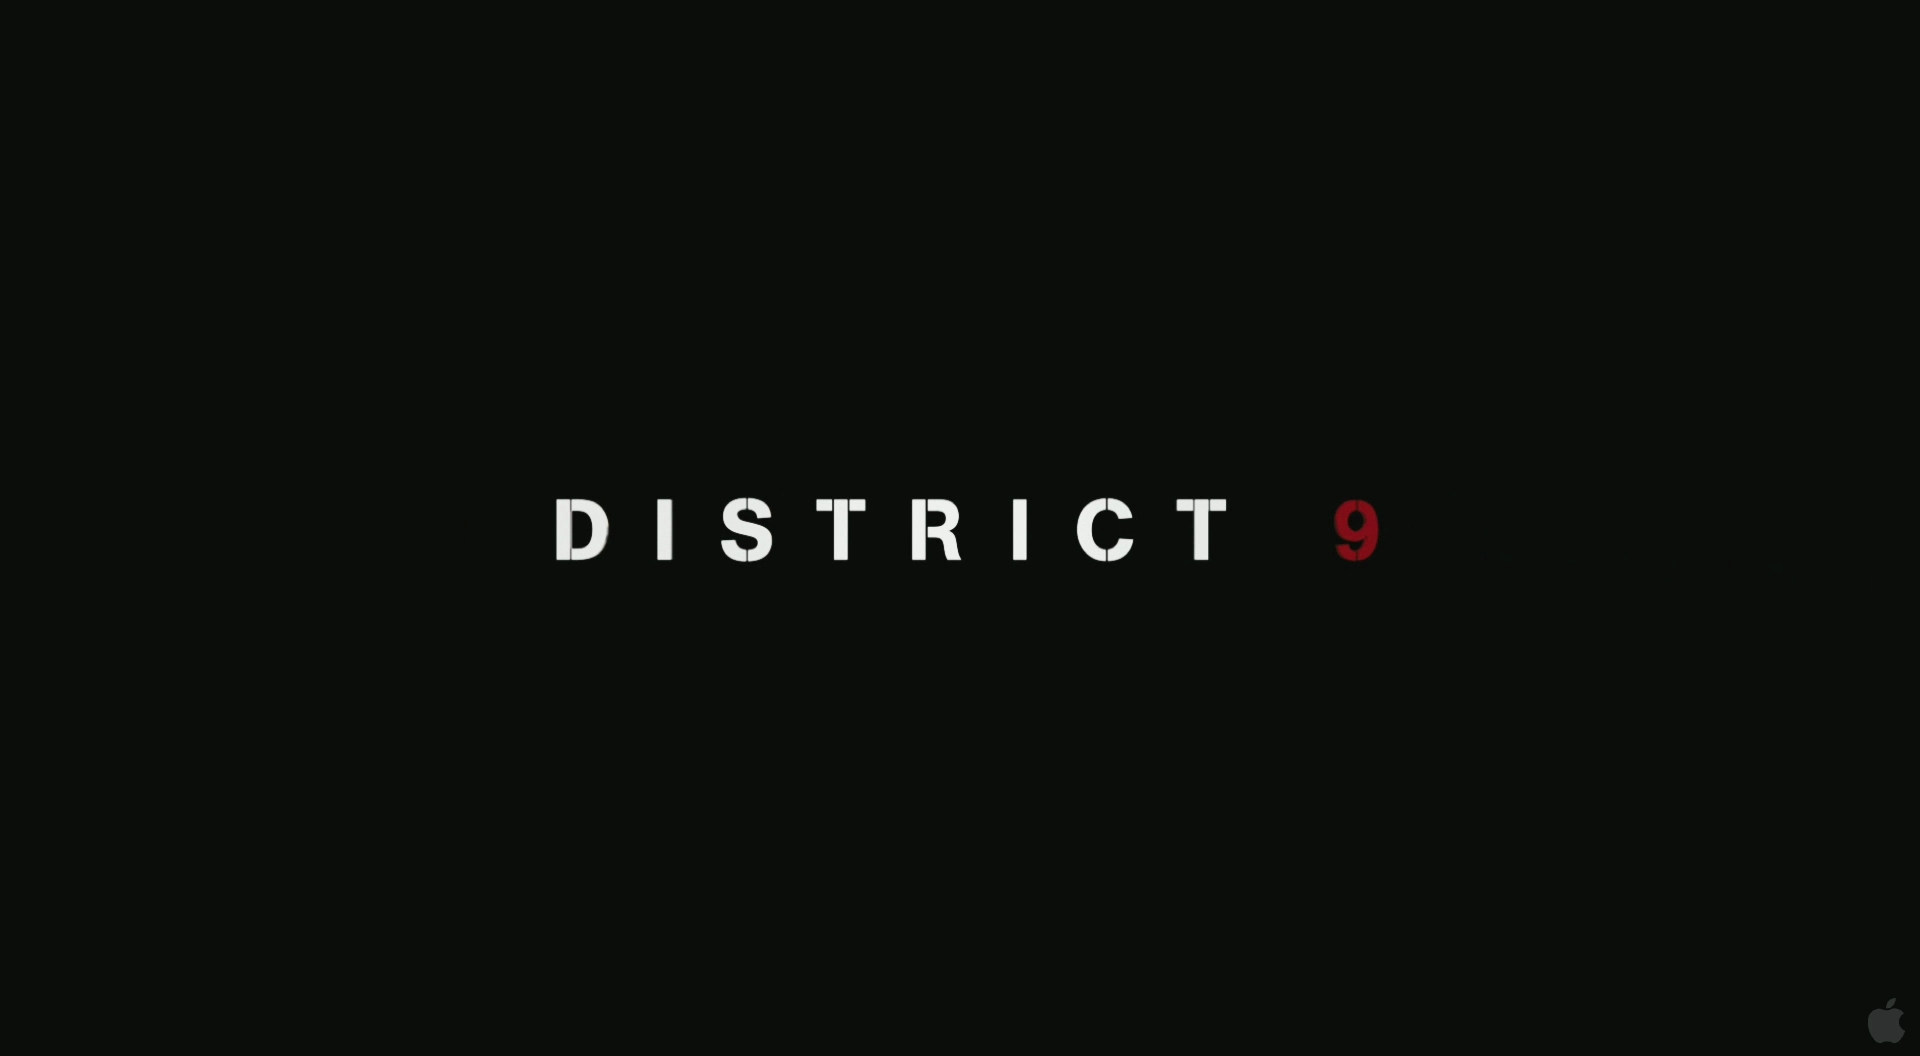 District 9 Wallpapers Alien Motherships Guns Helicopters